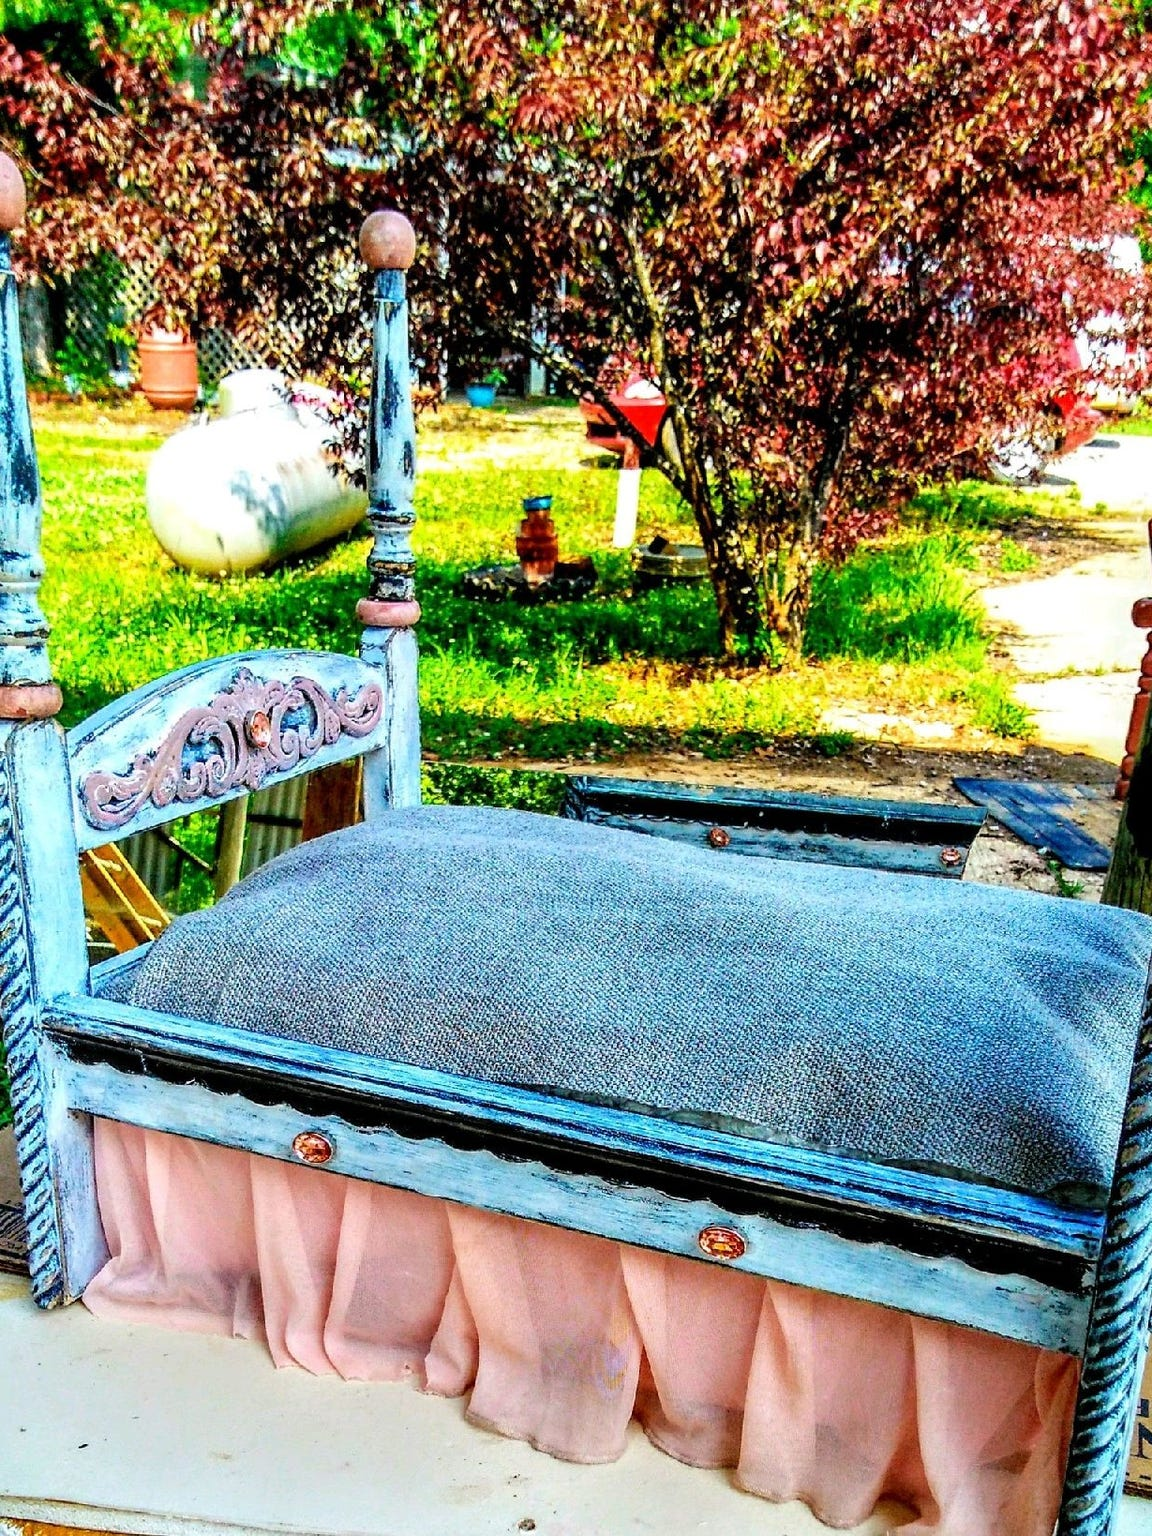 Marty Jean Pettit crafted a tiny, four-poster bed for her friend's dog.